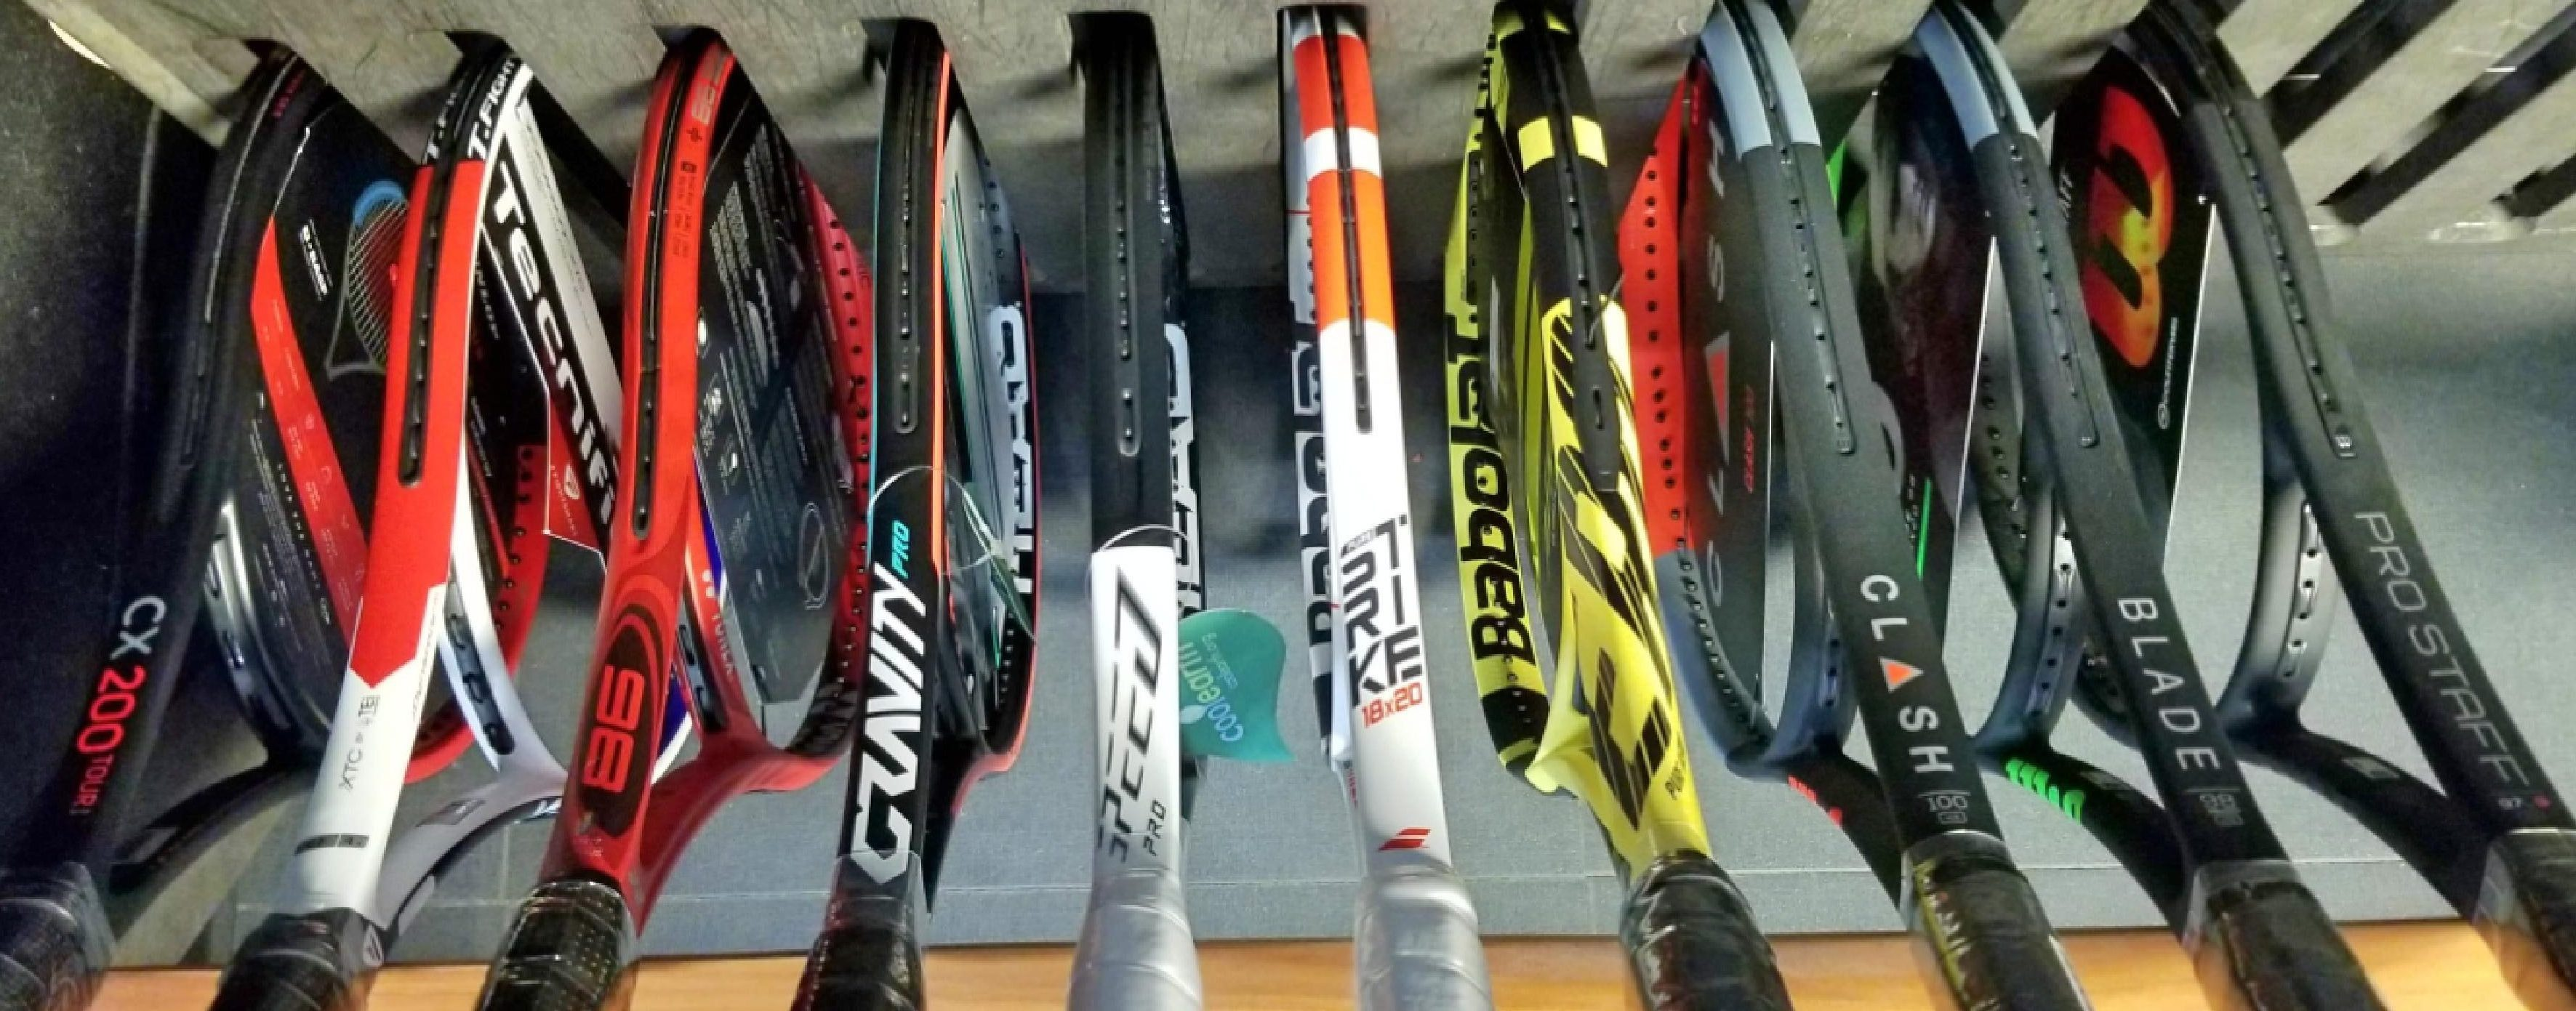 10 Racquets to Improve Your Game Blog Thmbnail